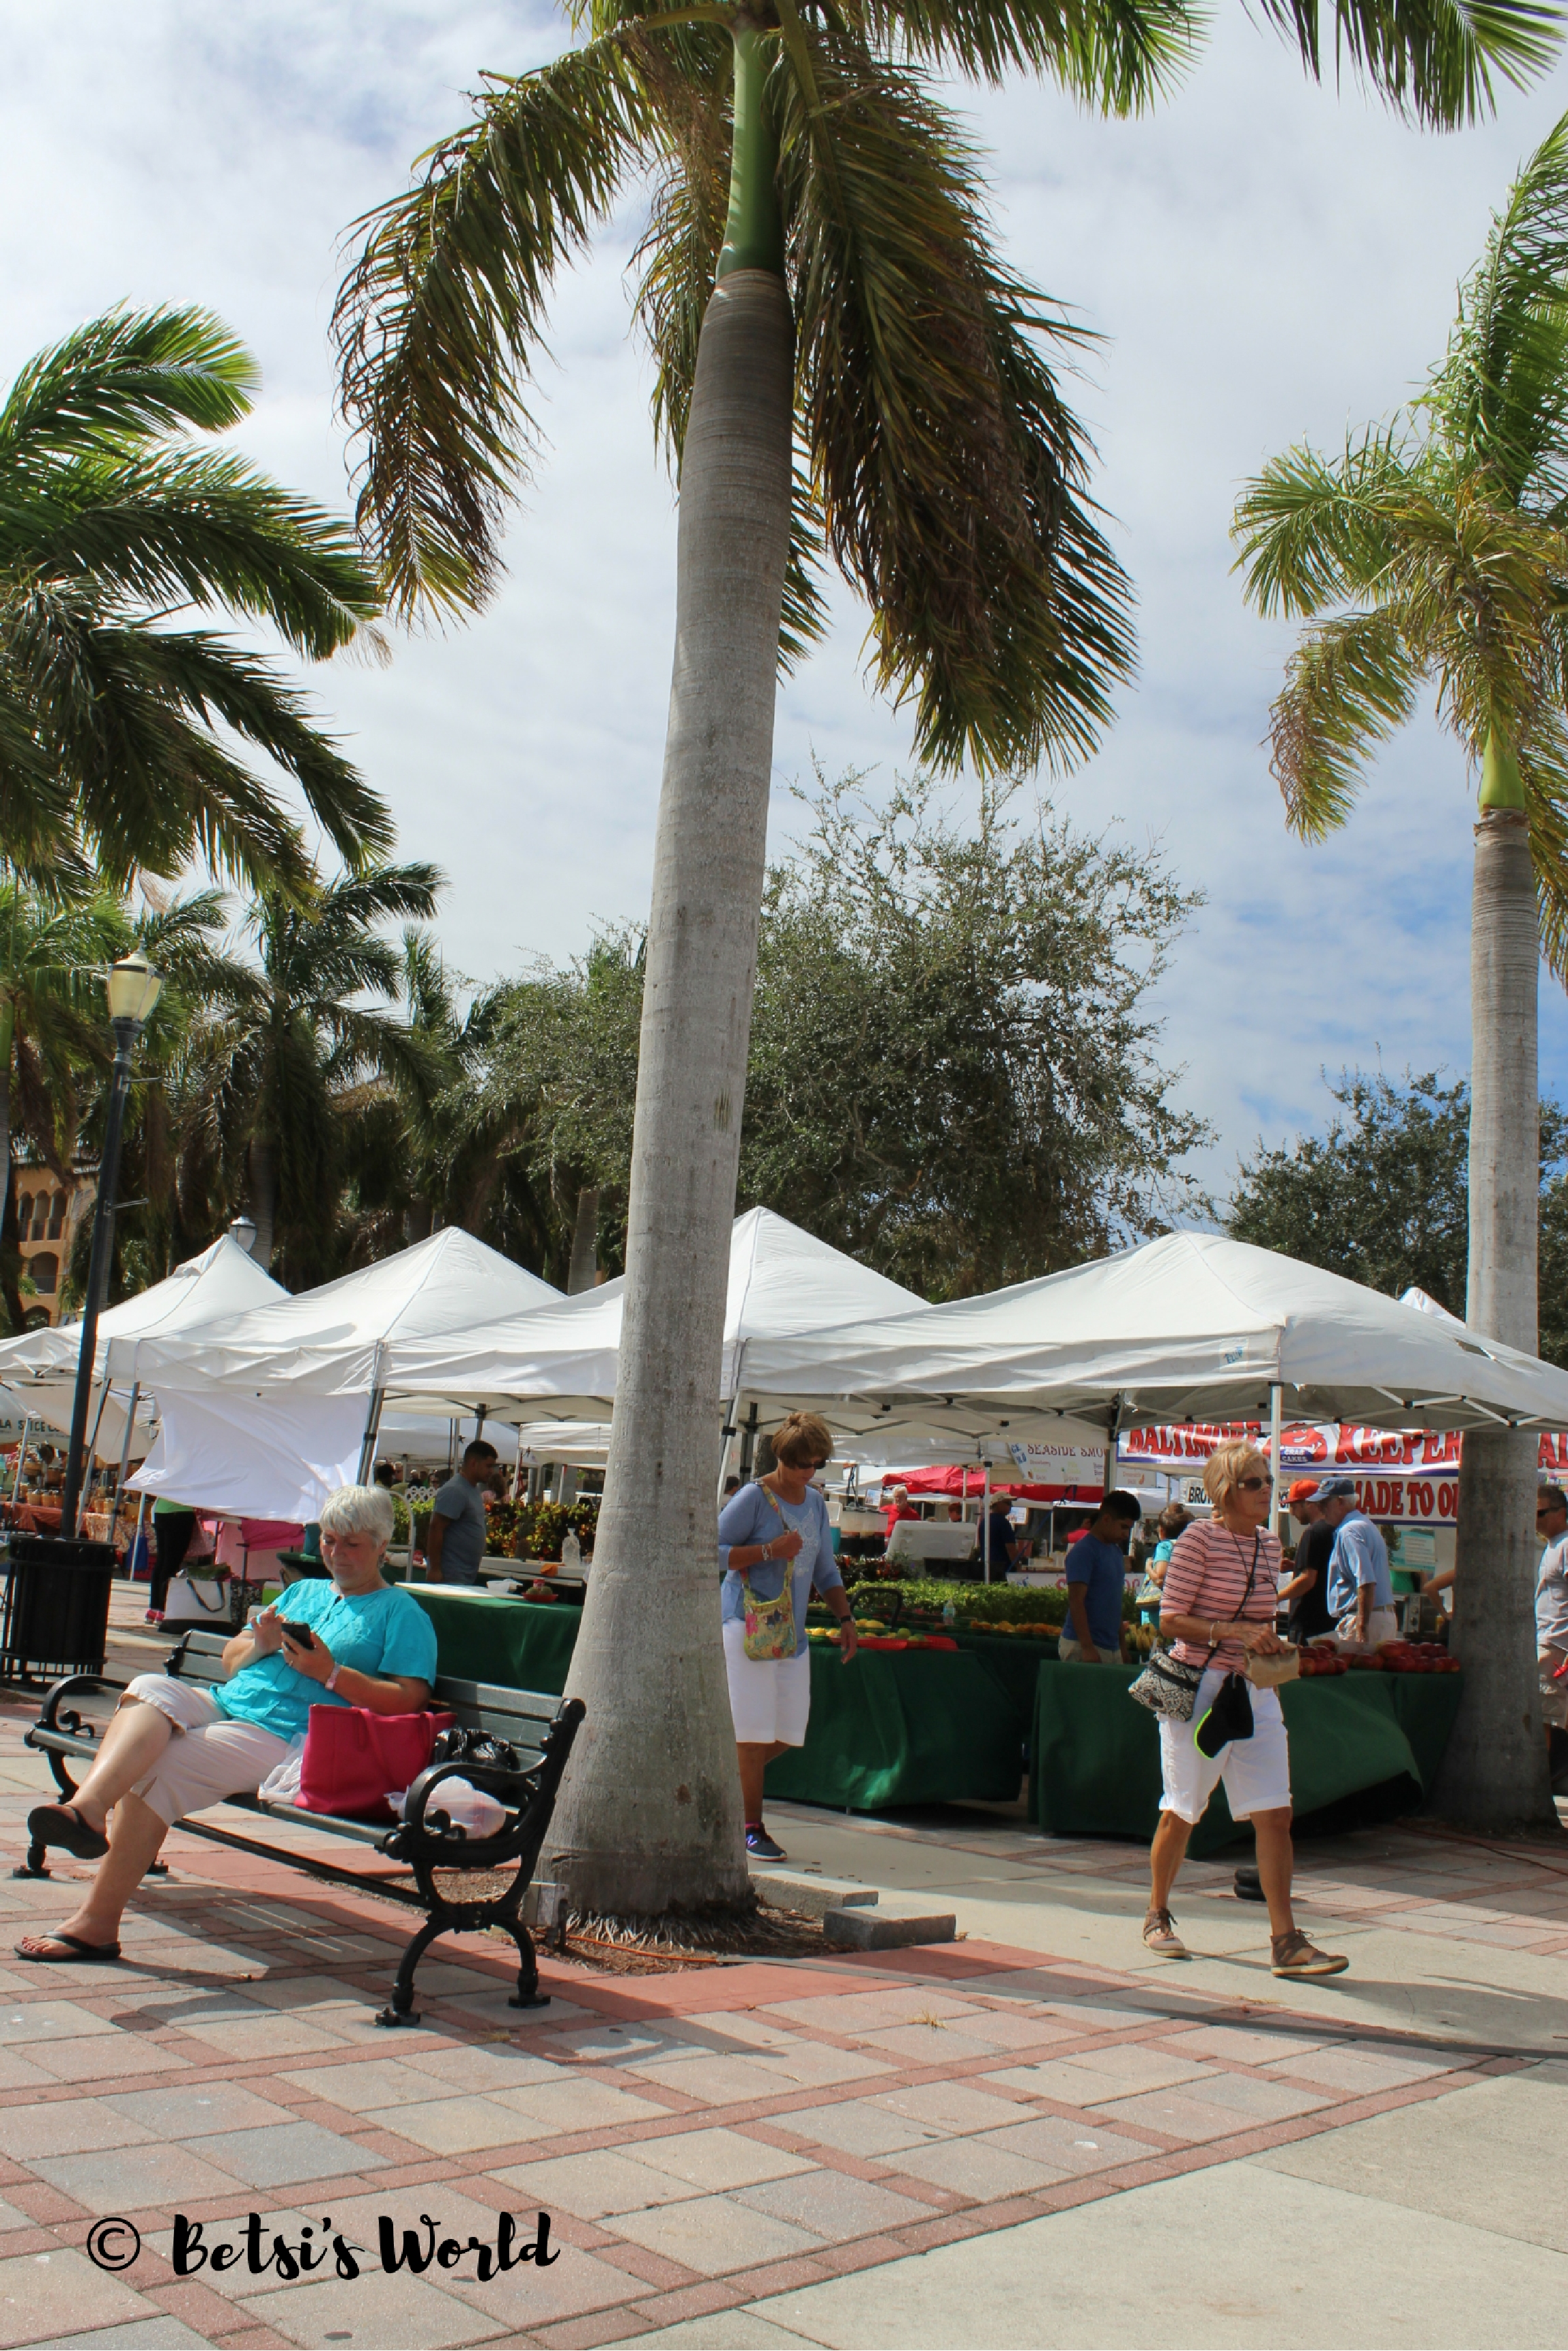 You can take in the view at the Fort Pierce Farmers' Market